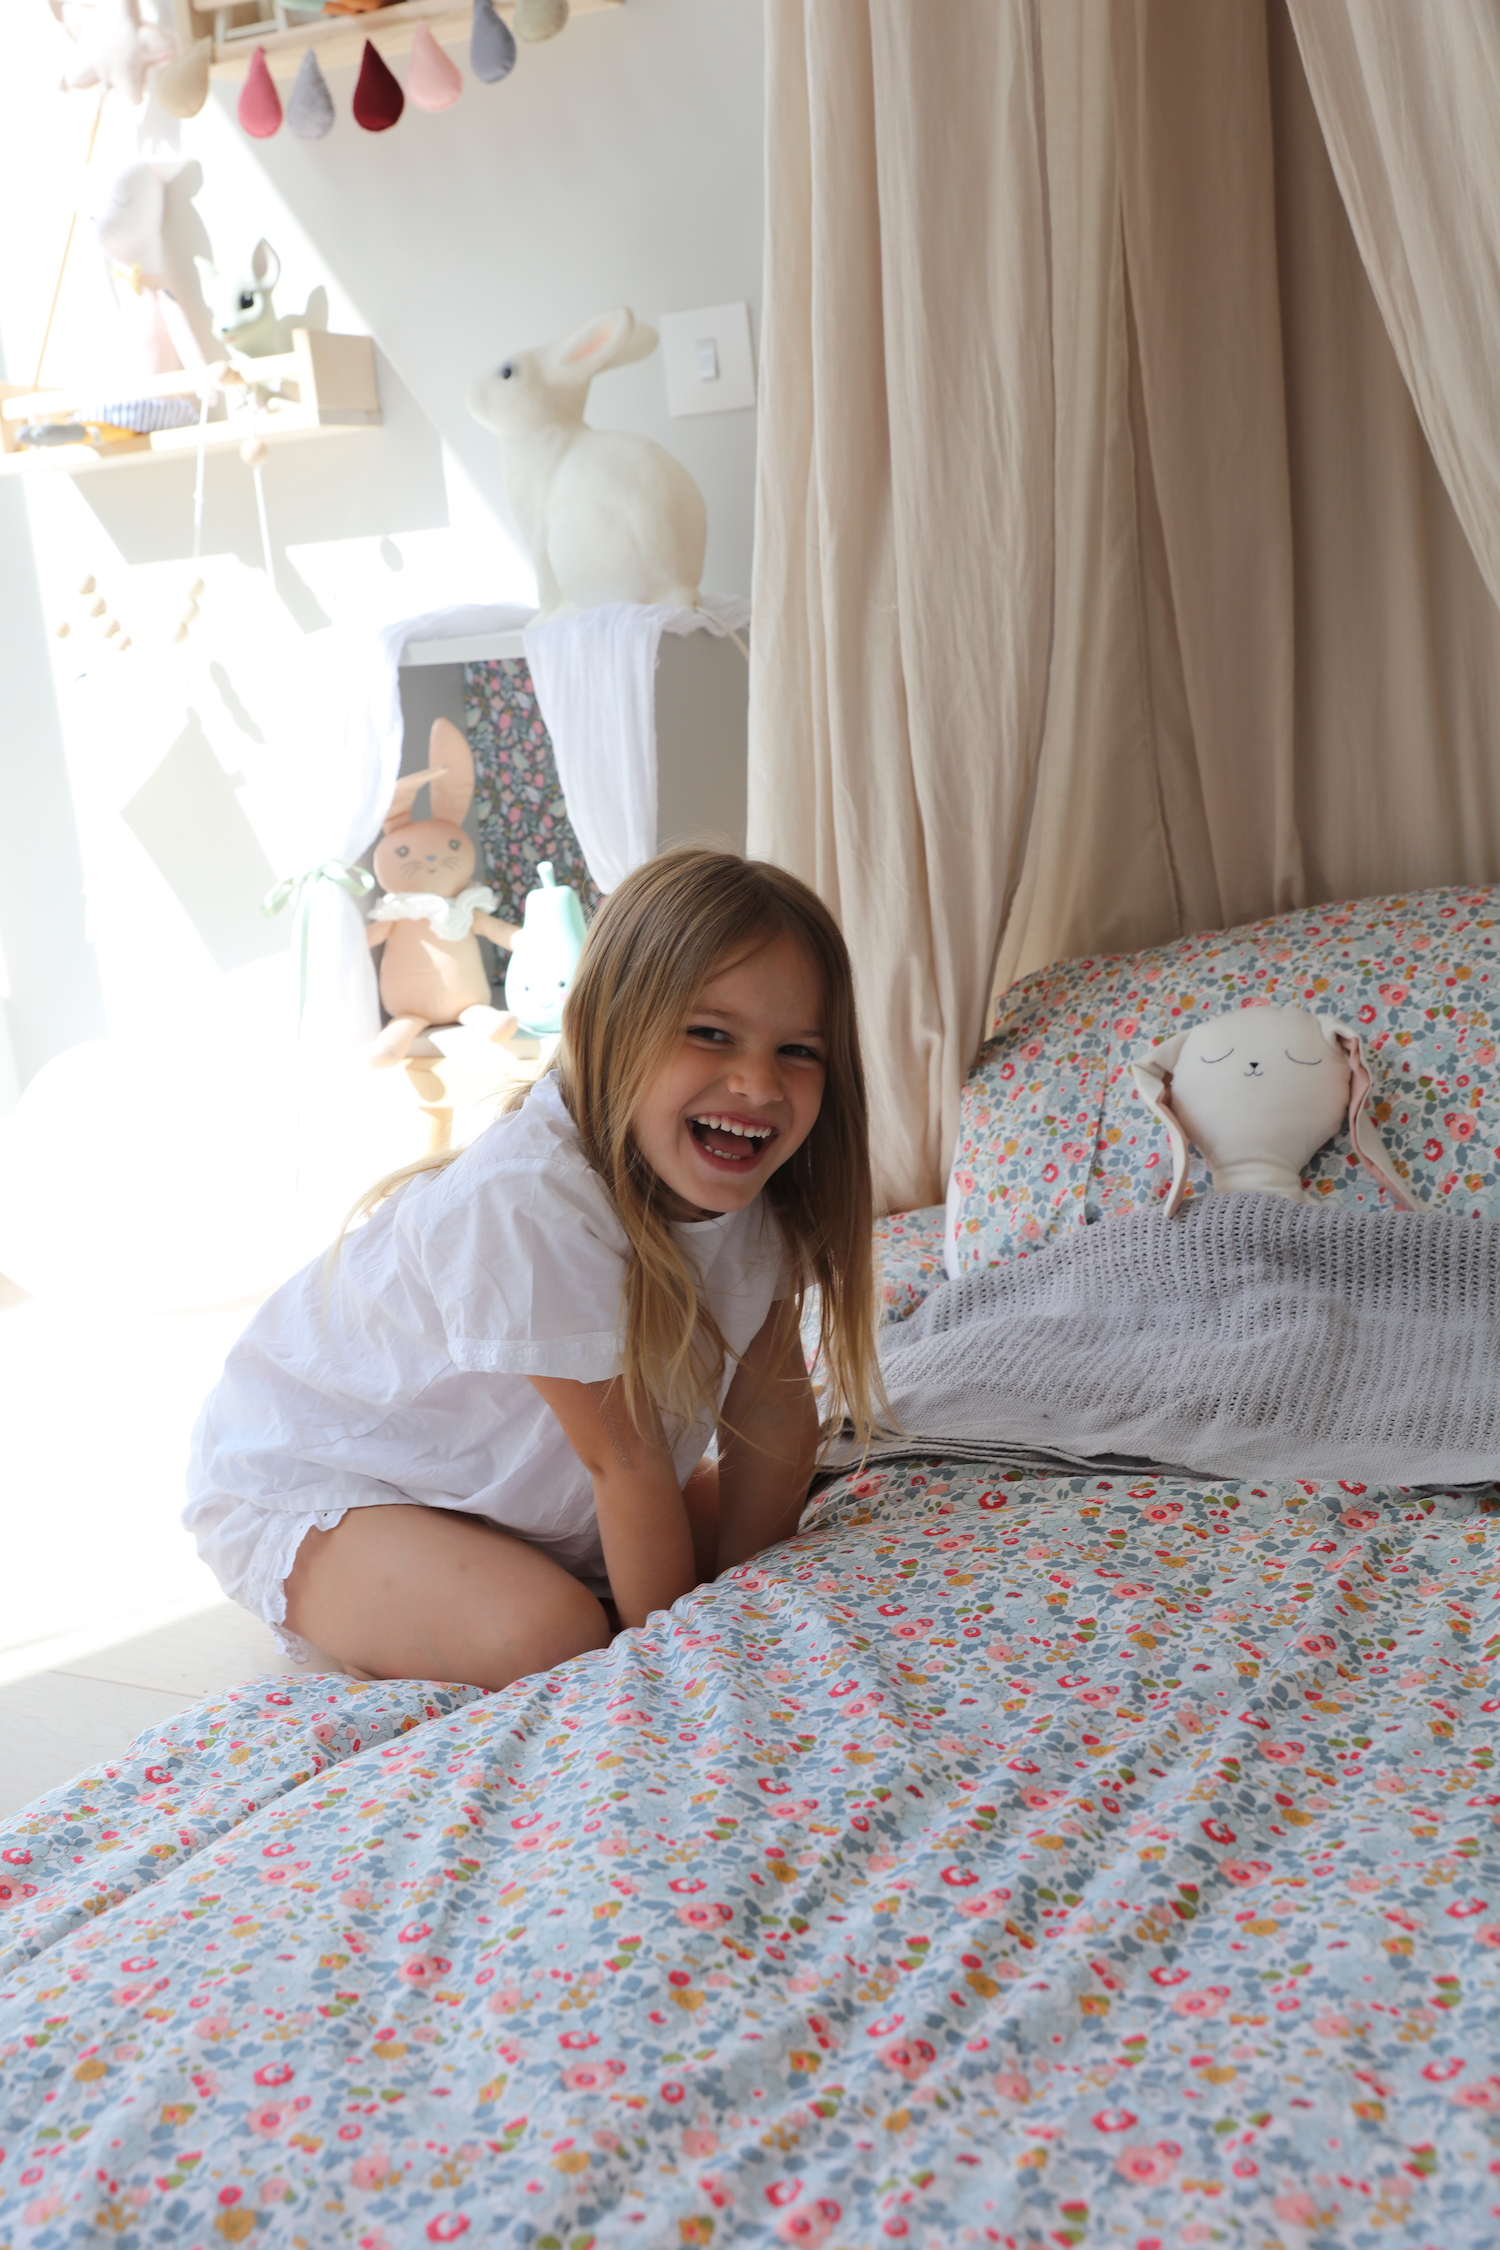 My_little_shop_pyjamas_girls_room